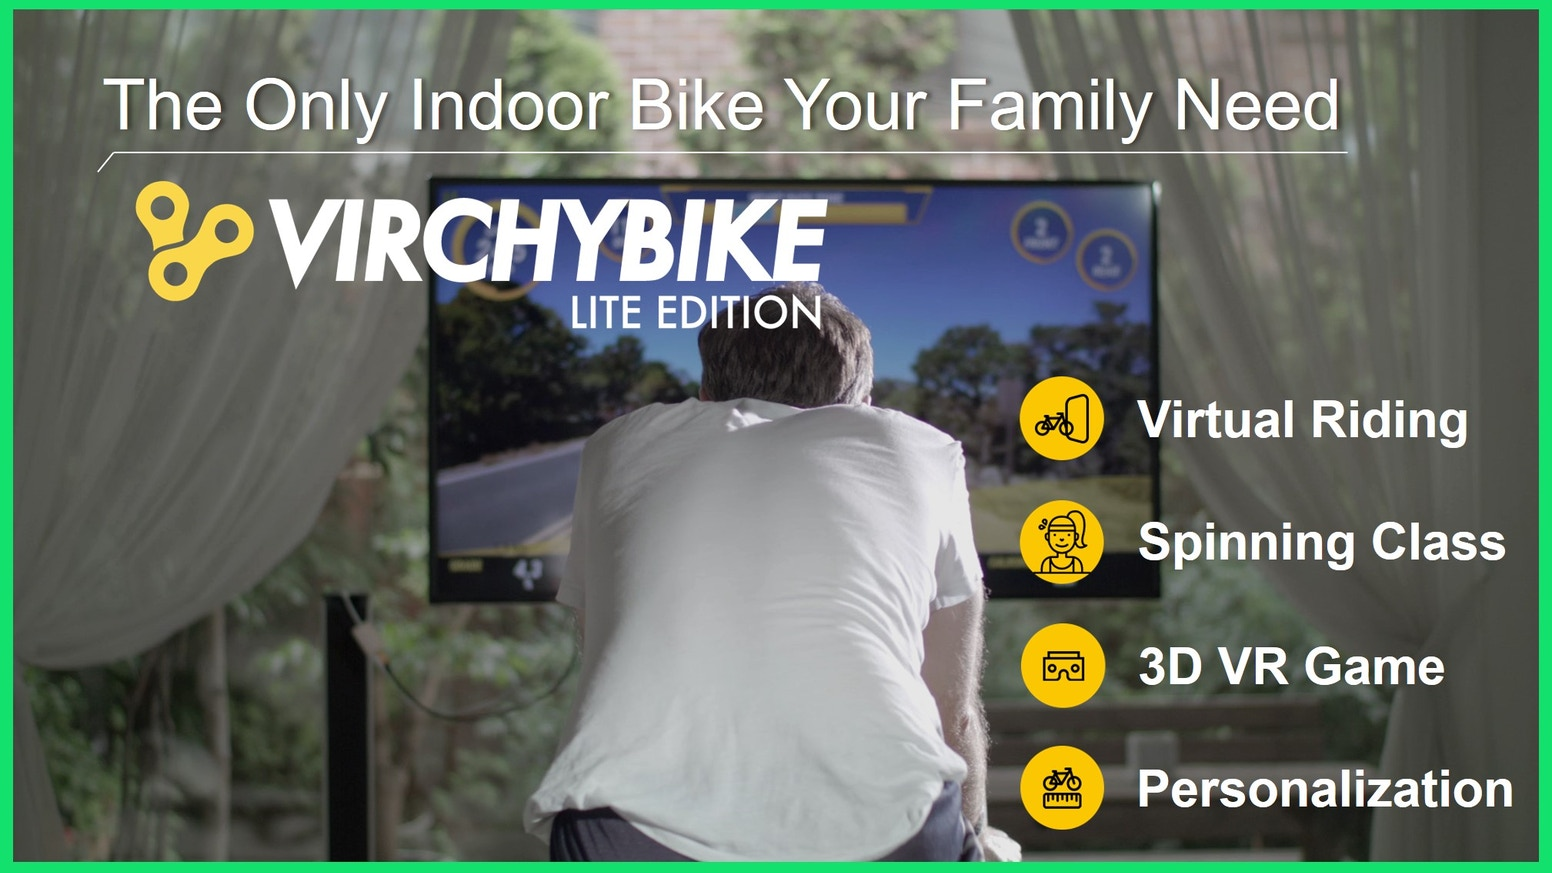 A revolutionary smart indoor bike with integrated virtual reality programs and a personalized workout management system.